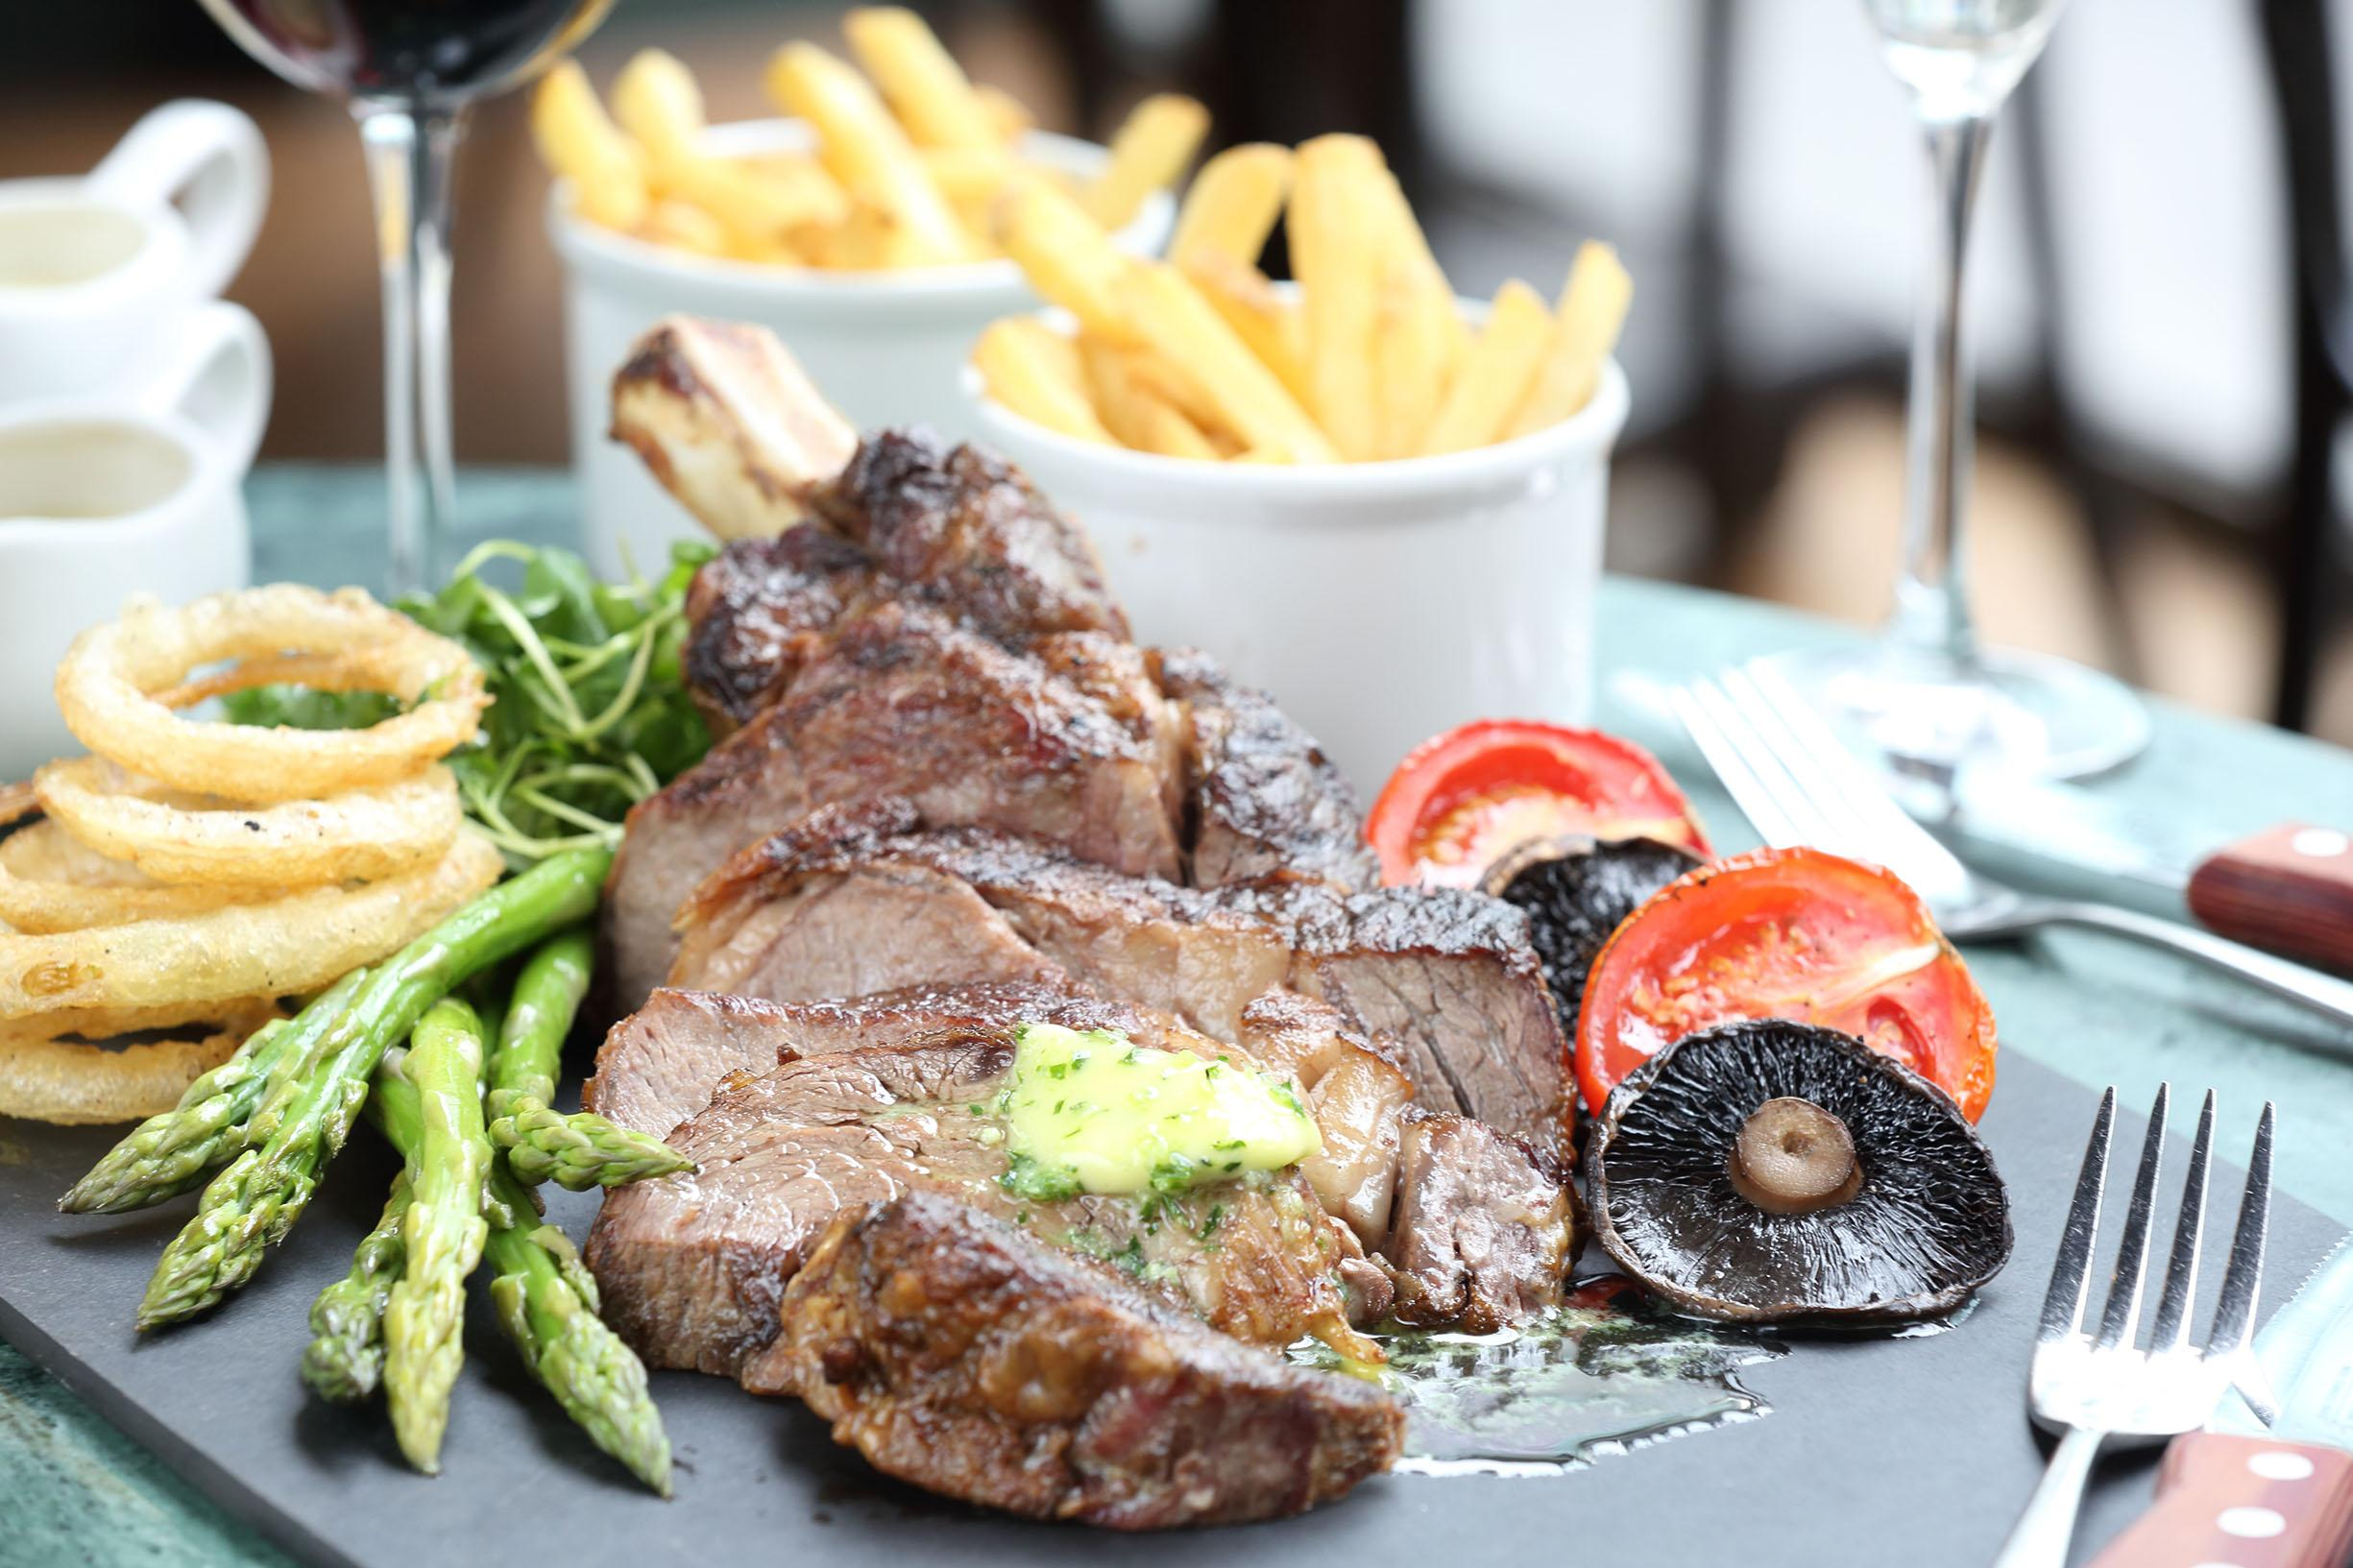 Browns Brasserie & Bar - Birmingham - West Midlands